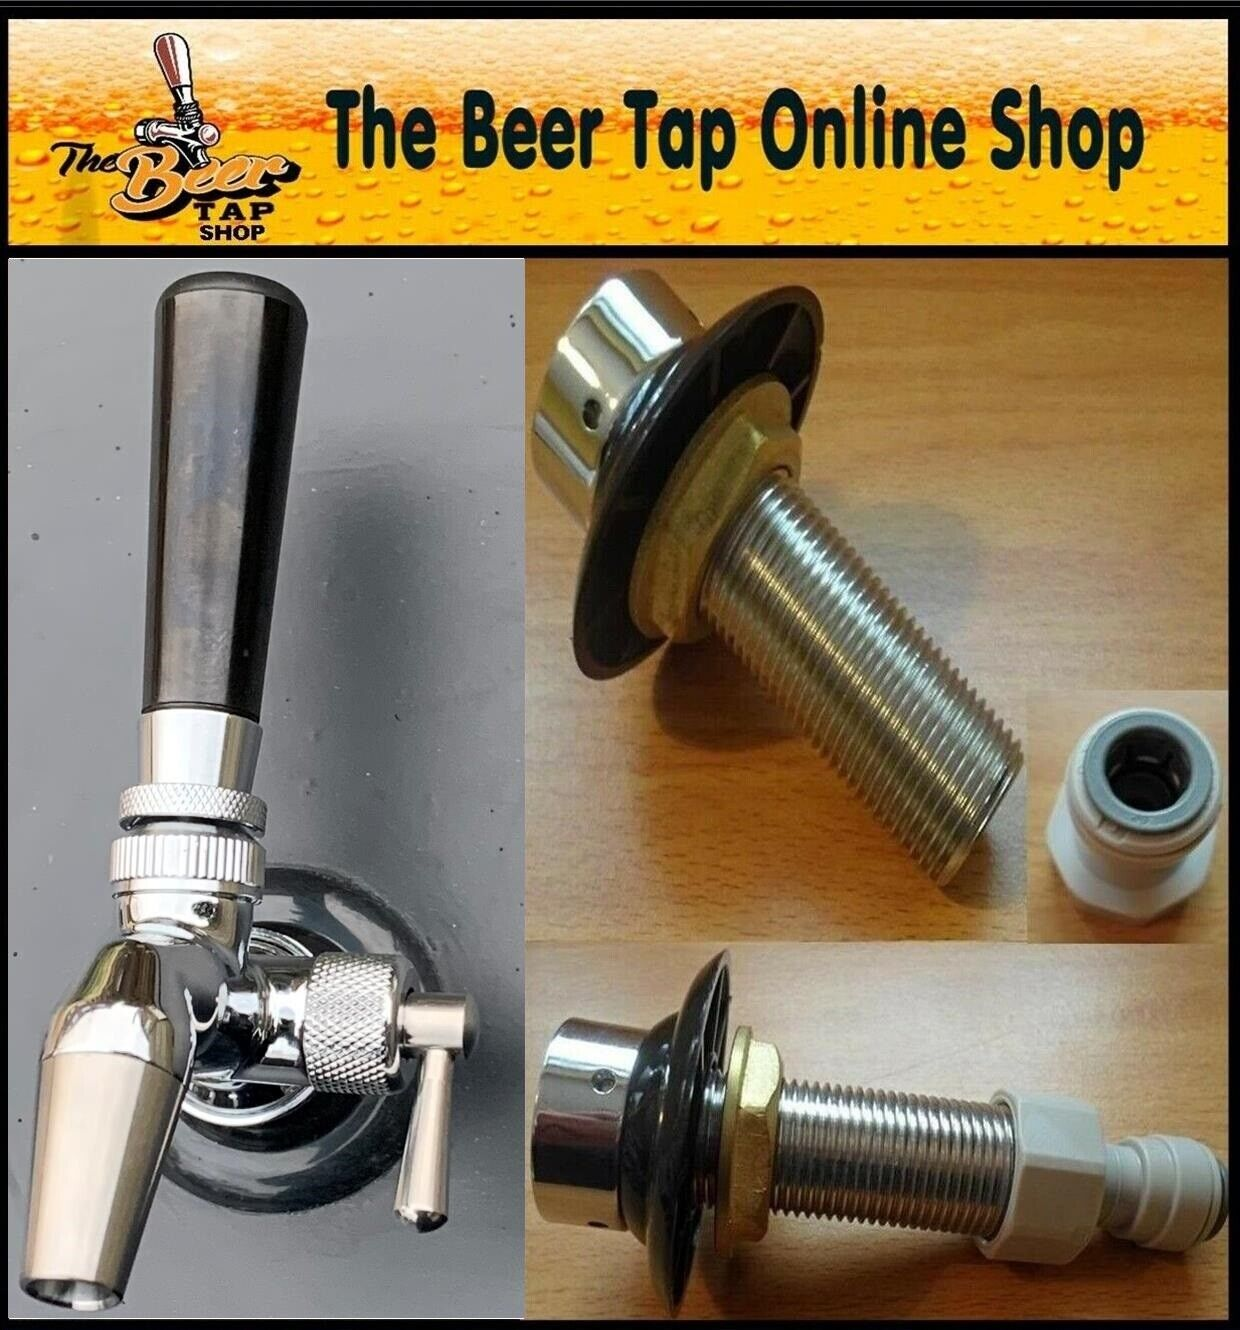 BEER TAP Intertap Flow Control Stainless Steel Faucet & Shank ...